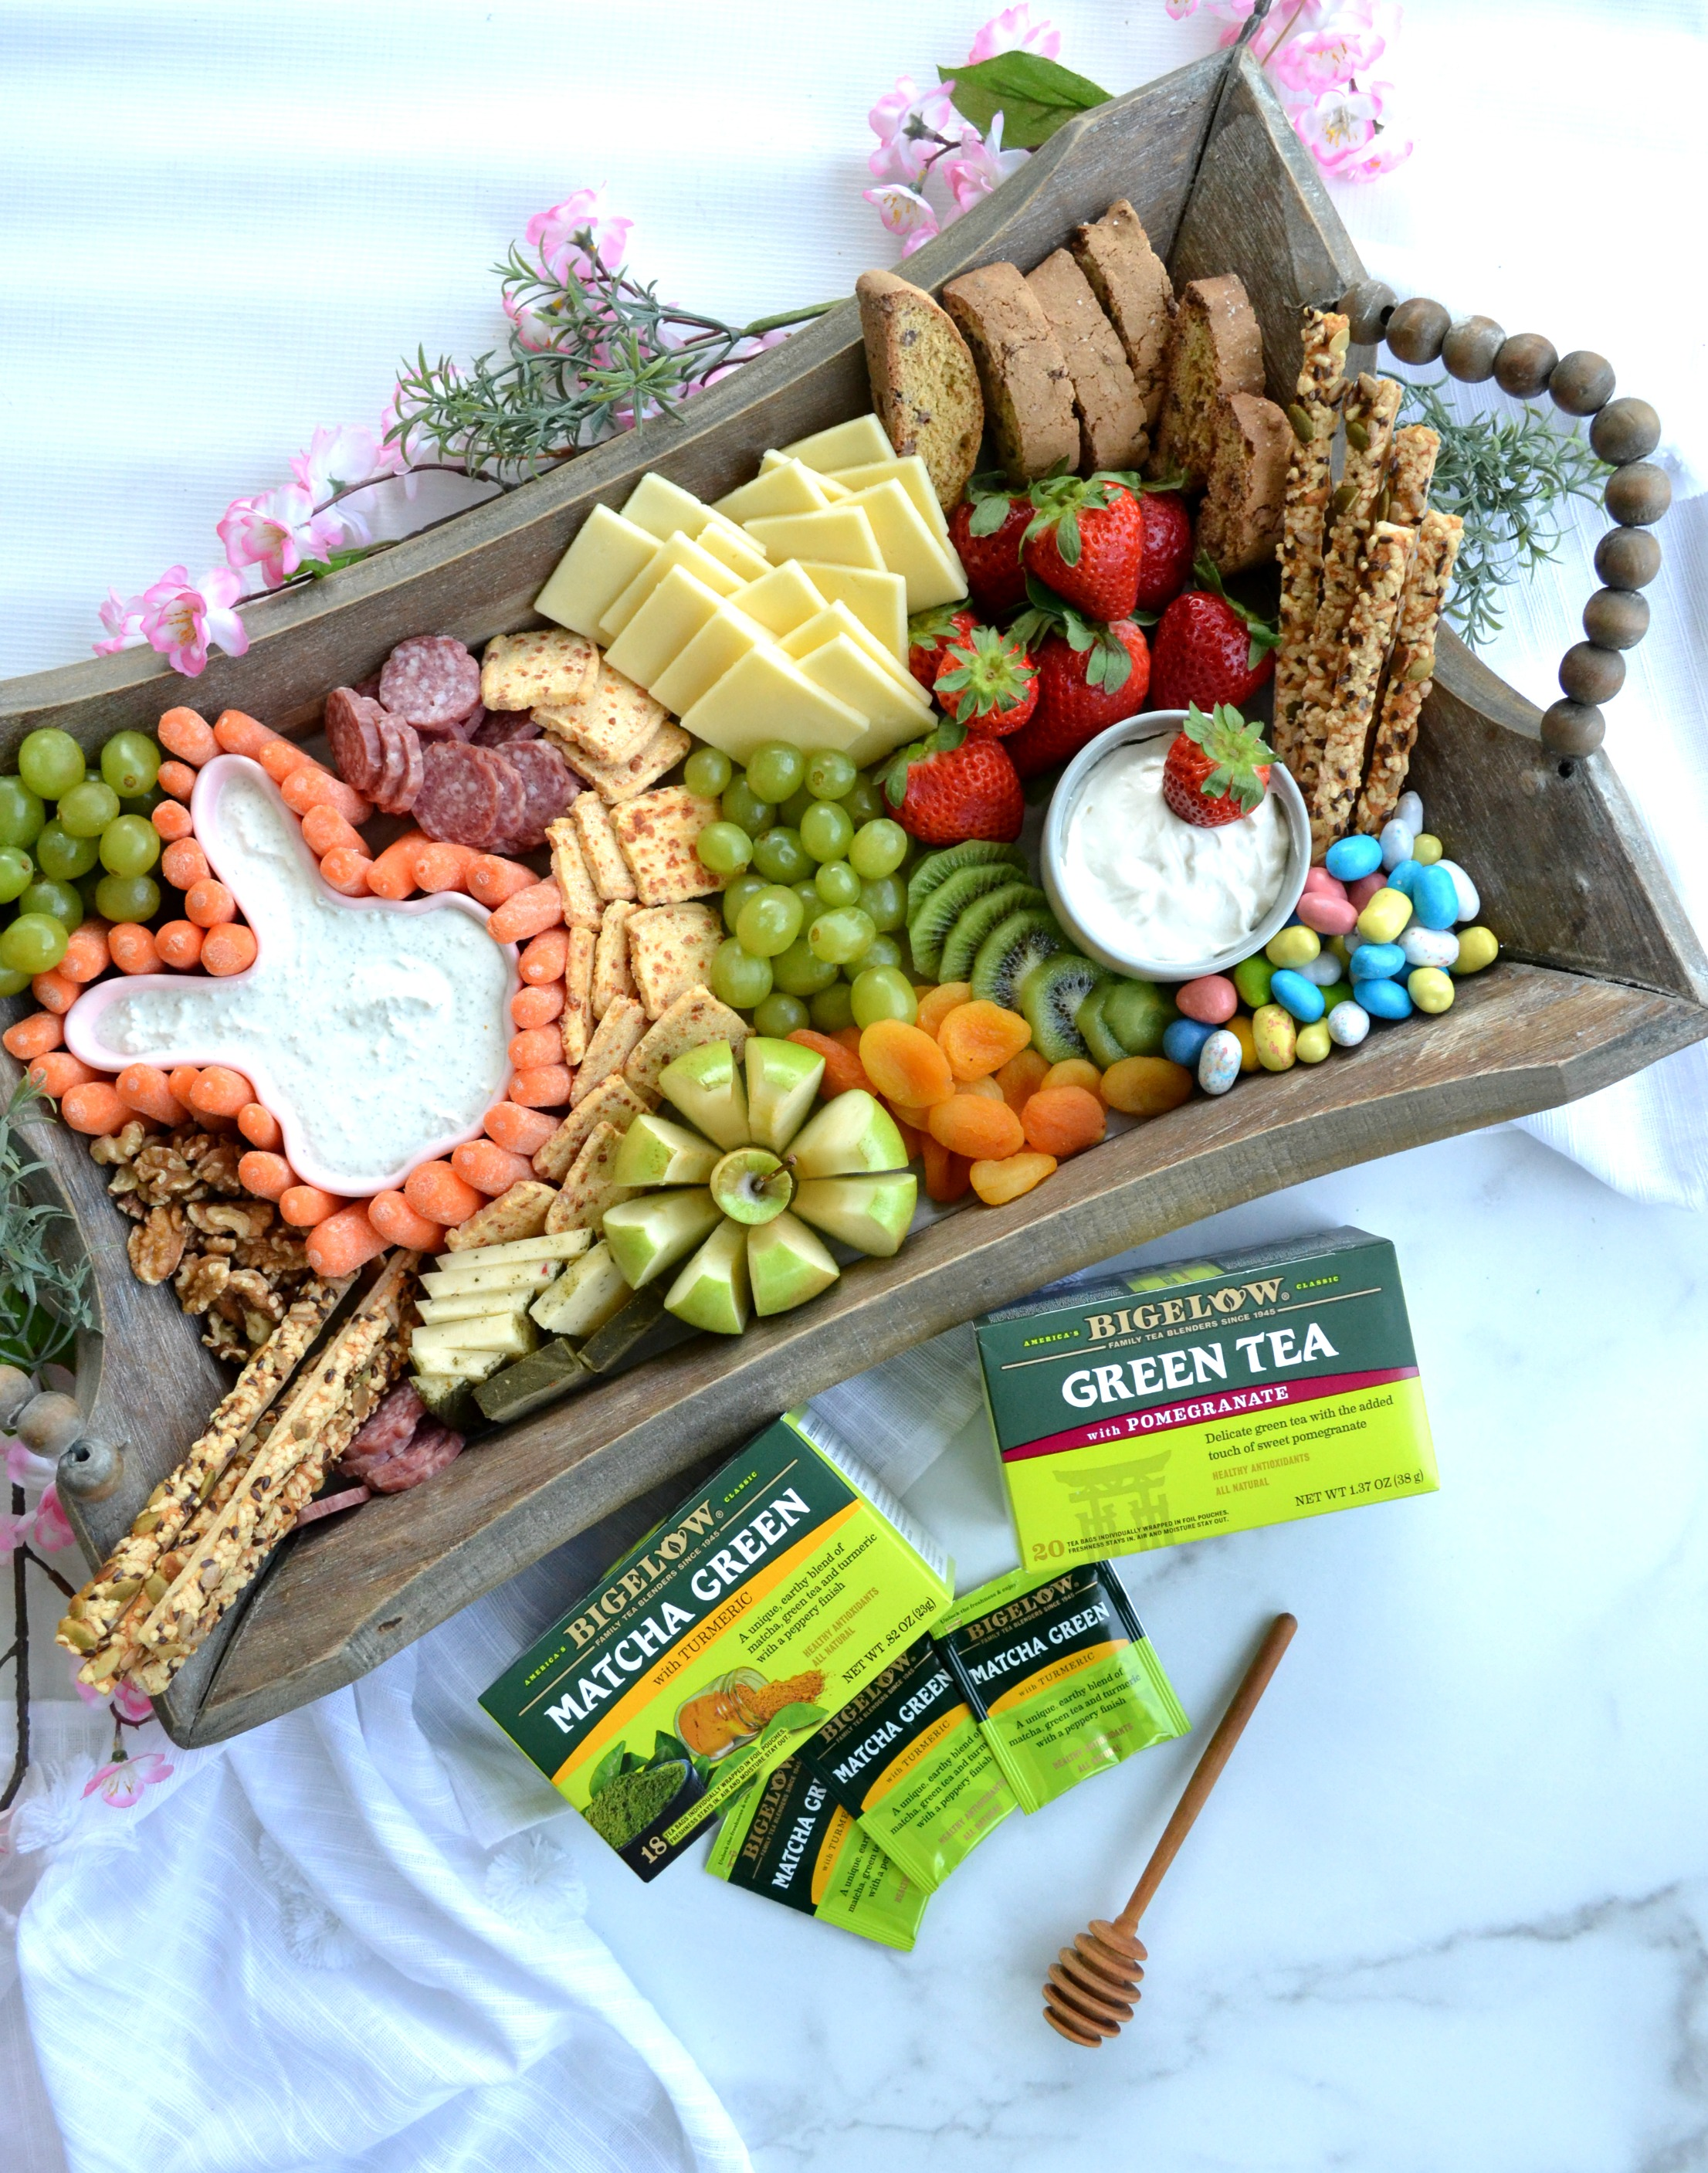 Celebrating Spring Over Tea + Charcuterie Board Ideas